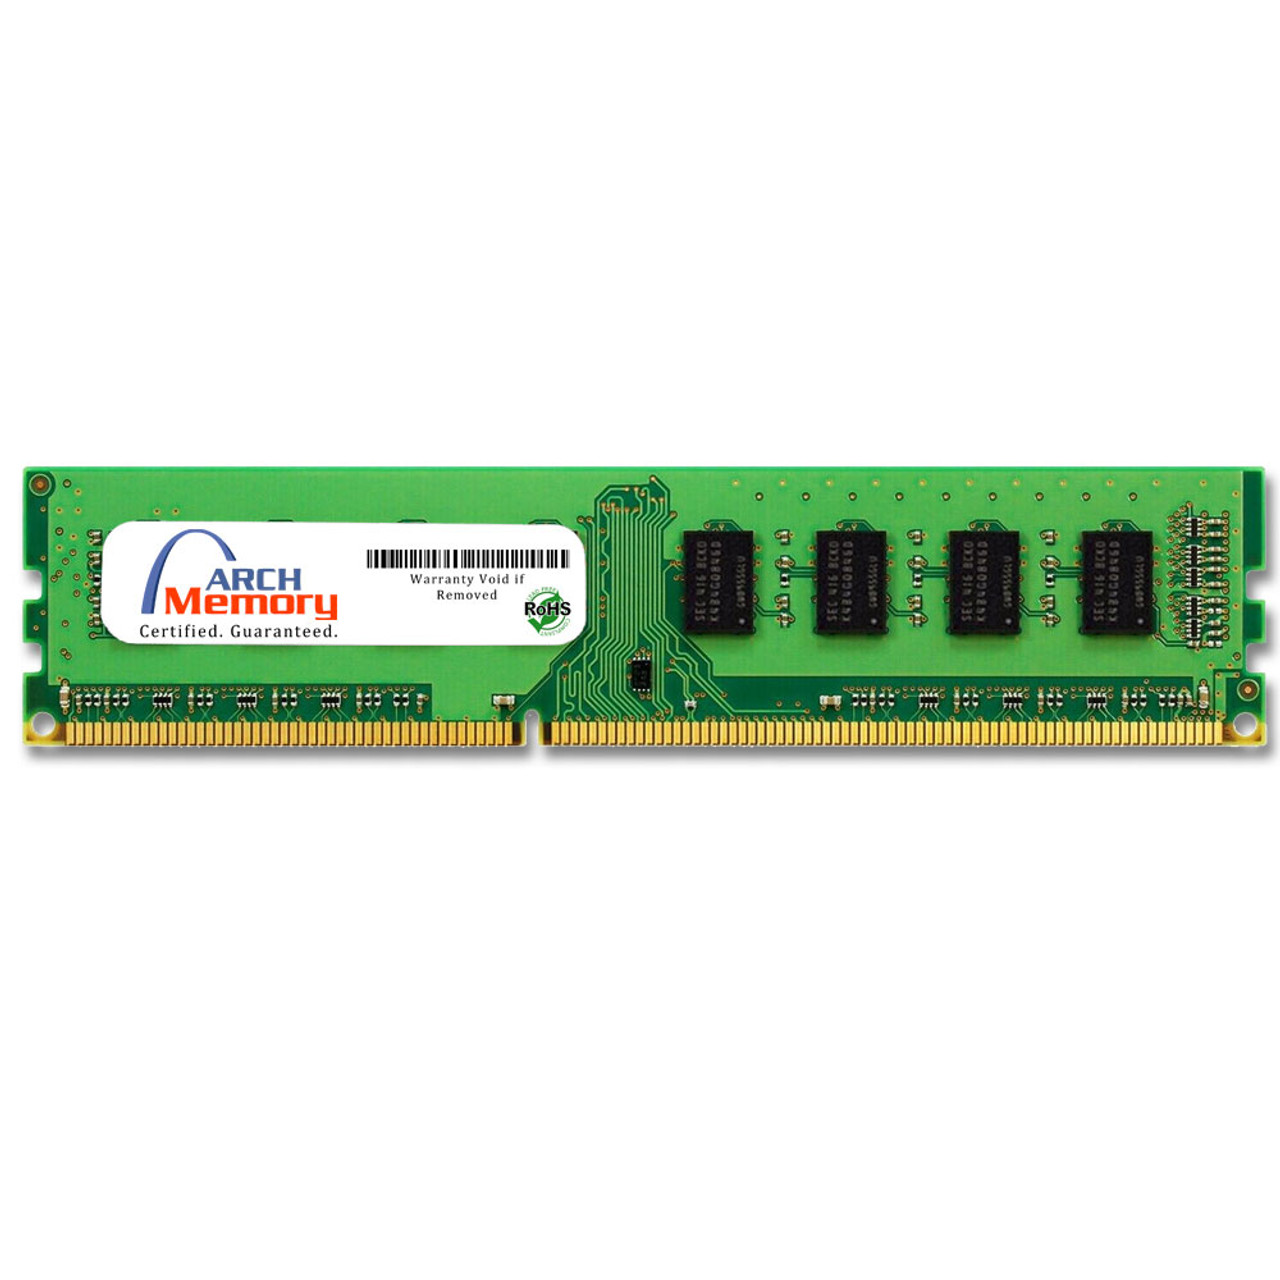 8GB 240-Pin DDR3-1333 PC3-10600 UDIMM (2Rx8) RAM | Arch Memory